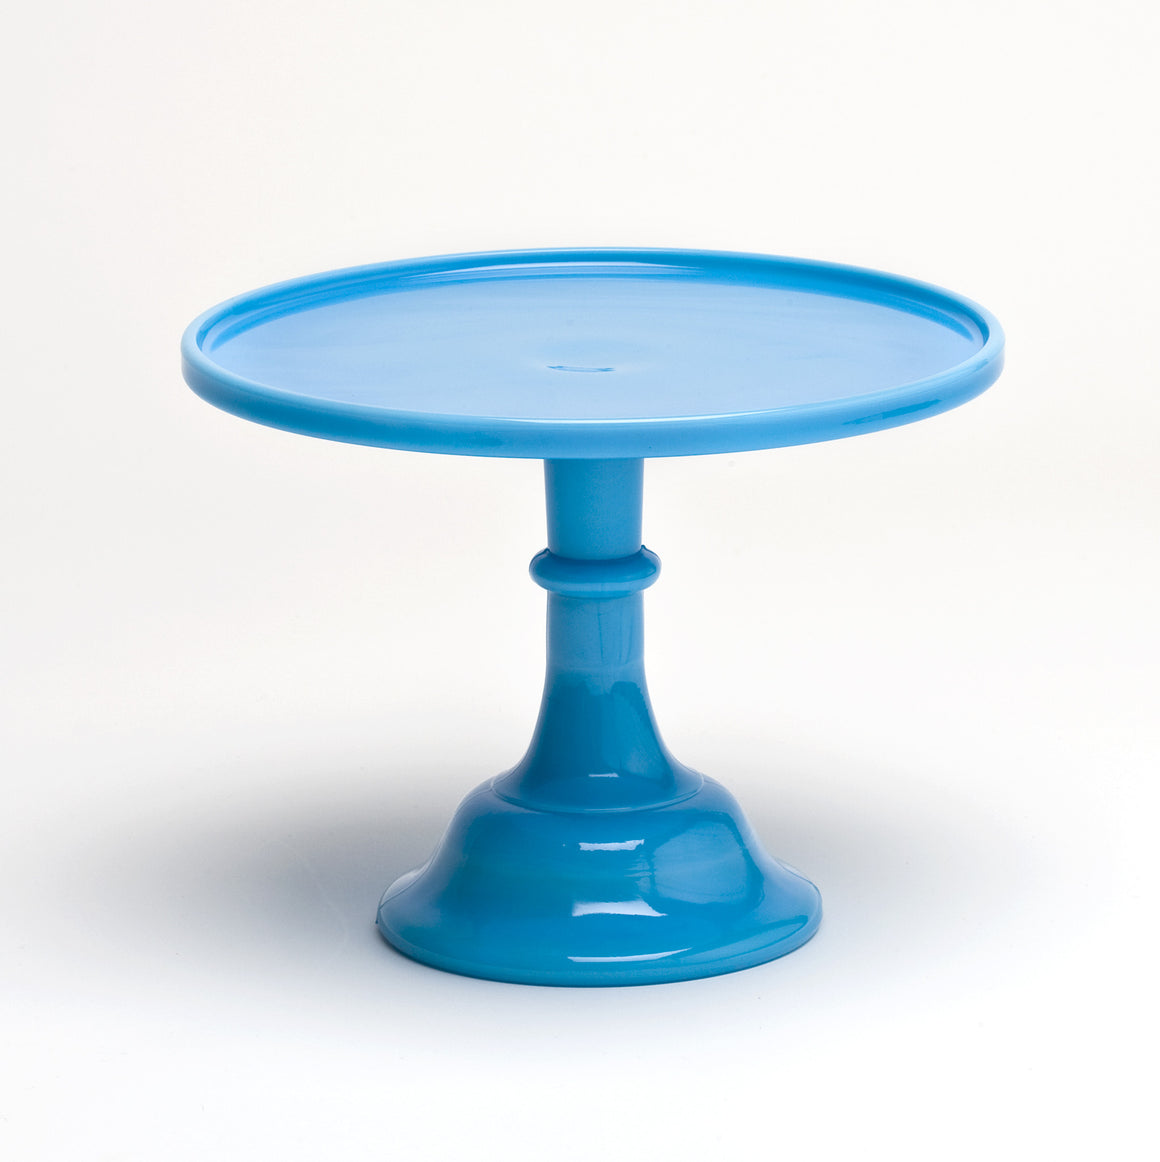 Milk Glass Cake Stand - Blue 12""